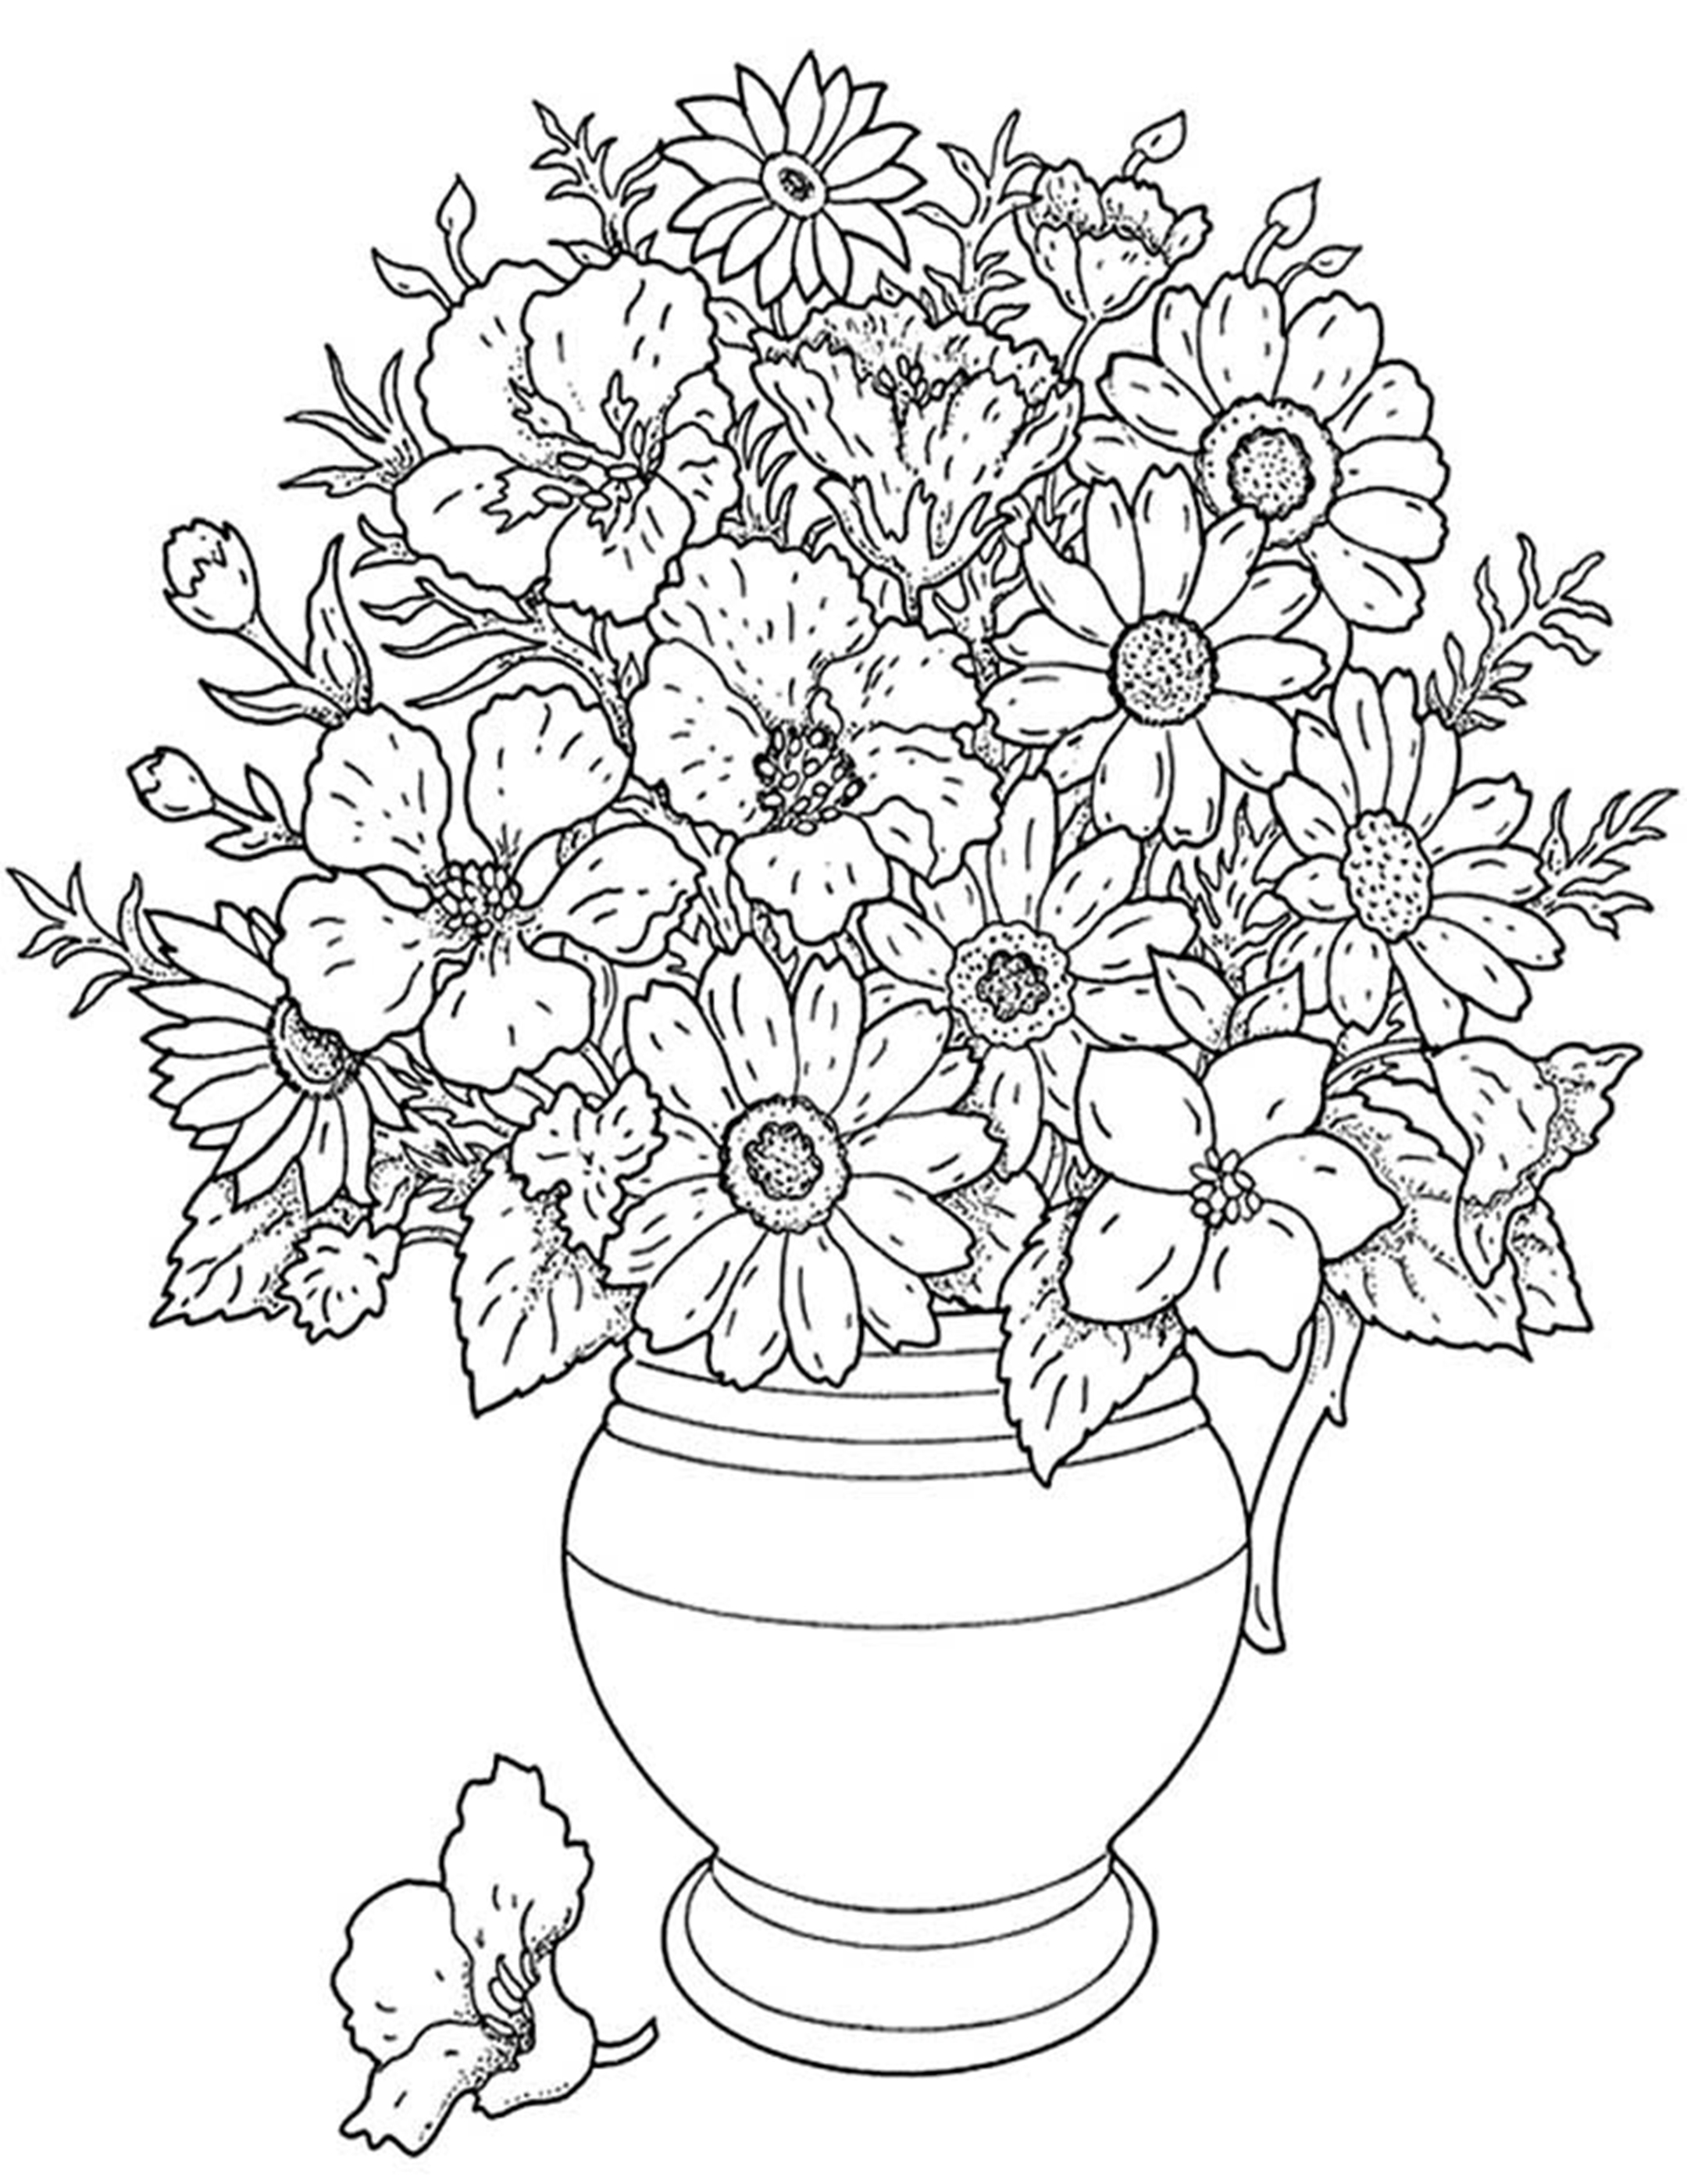 flower colouring pictures to print free printable flower coloring pages for kids best pictures flower to colouring print 1 1